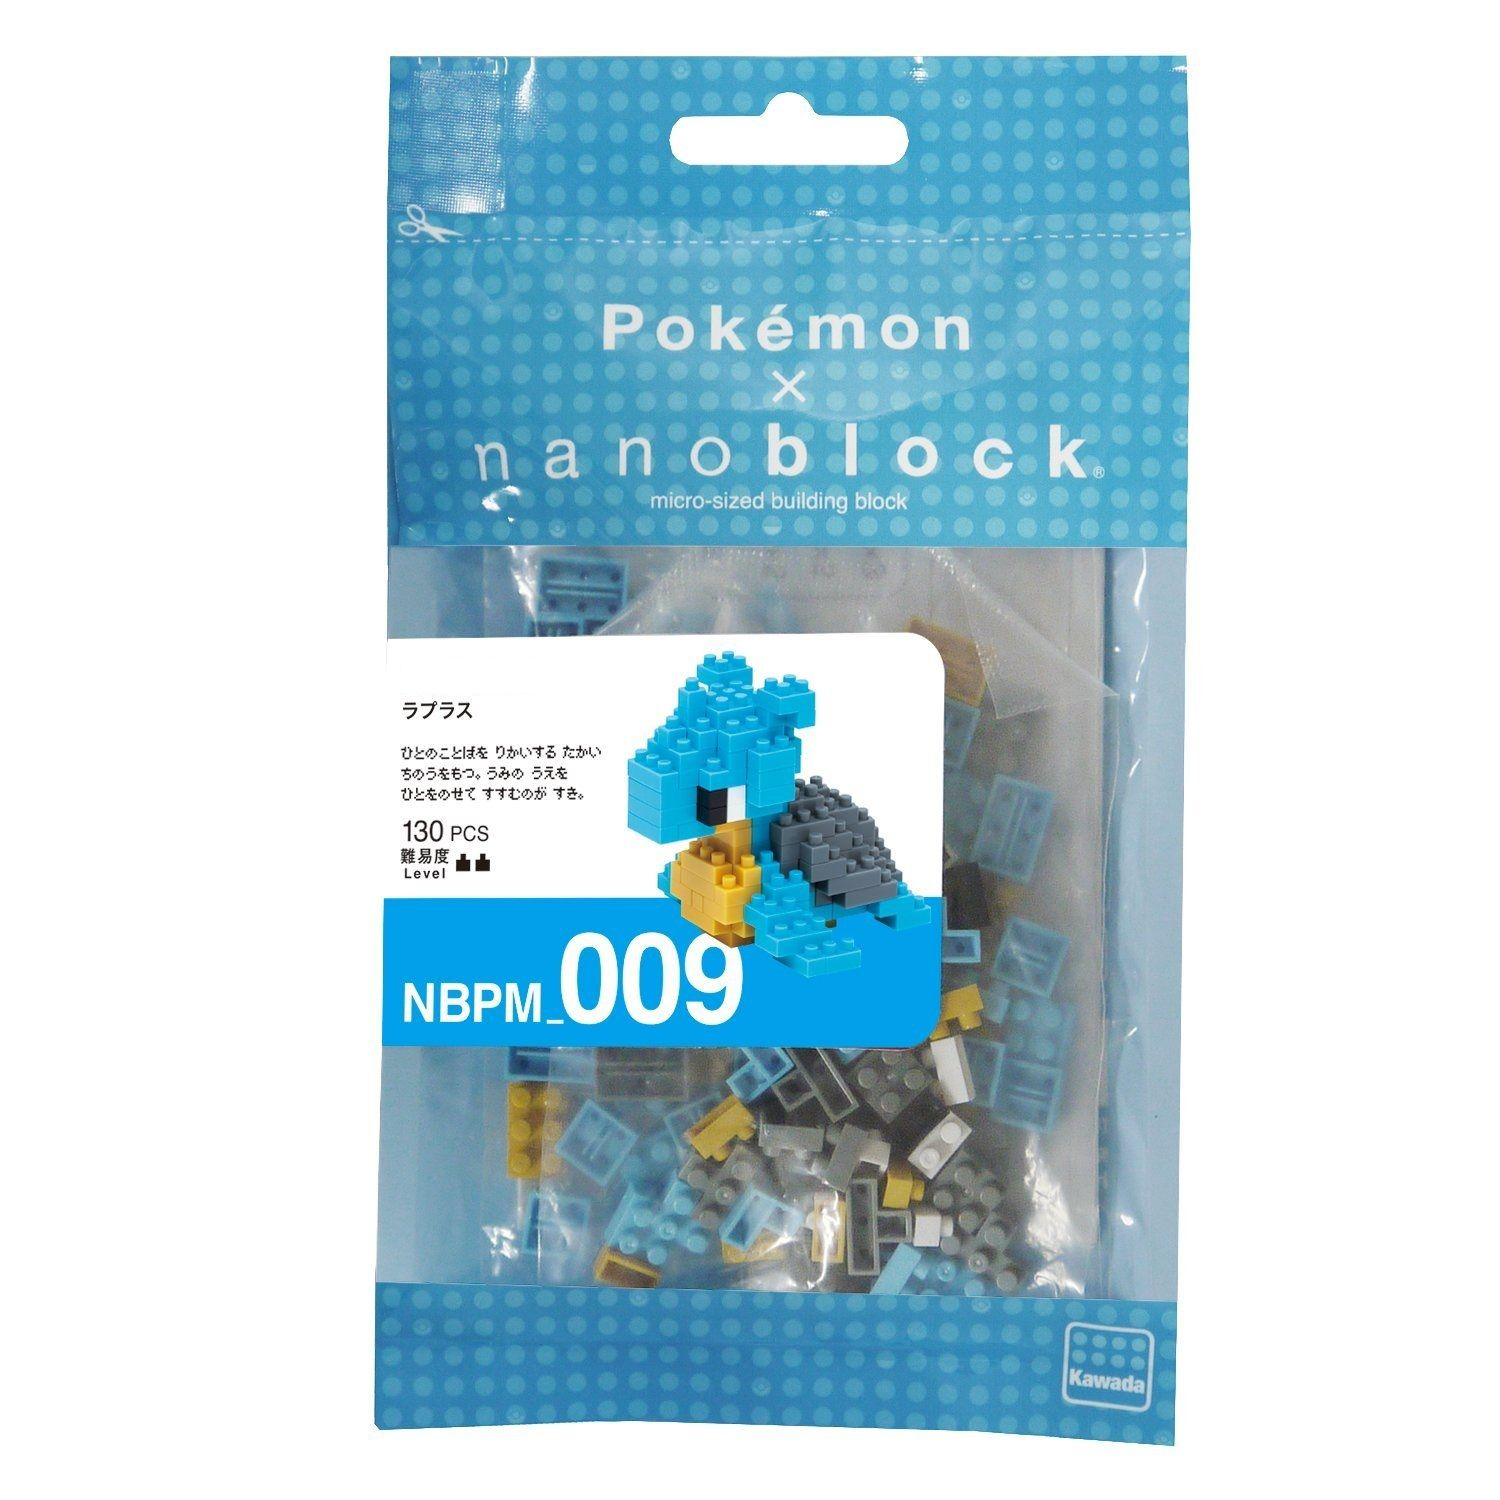 Nanoblocks Pokemon Lapras Building Set by nanoblock